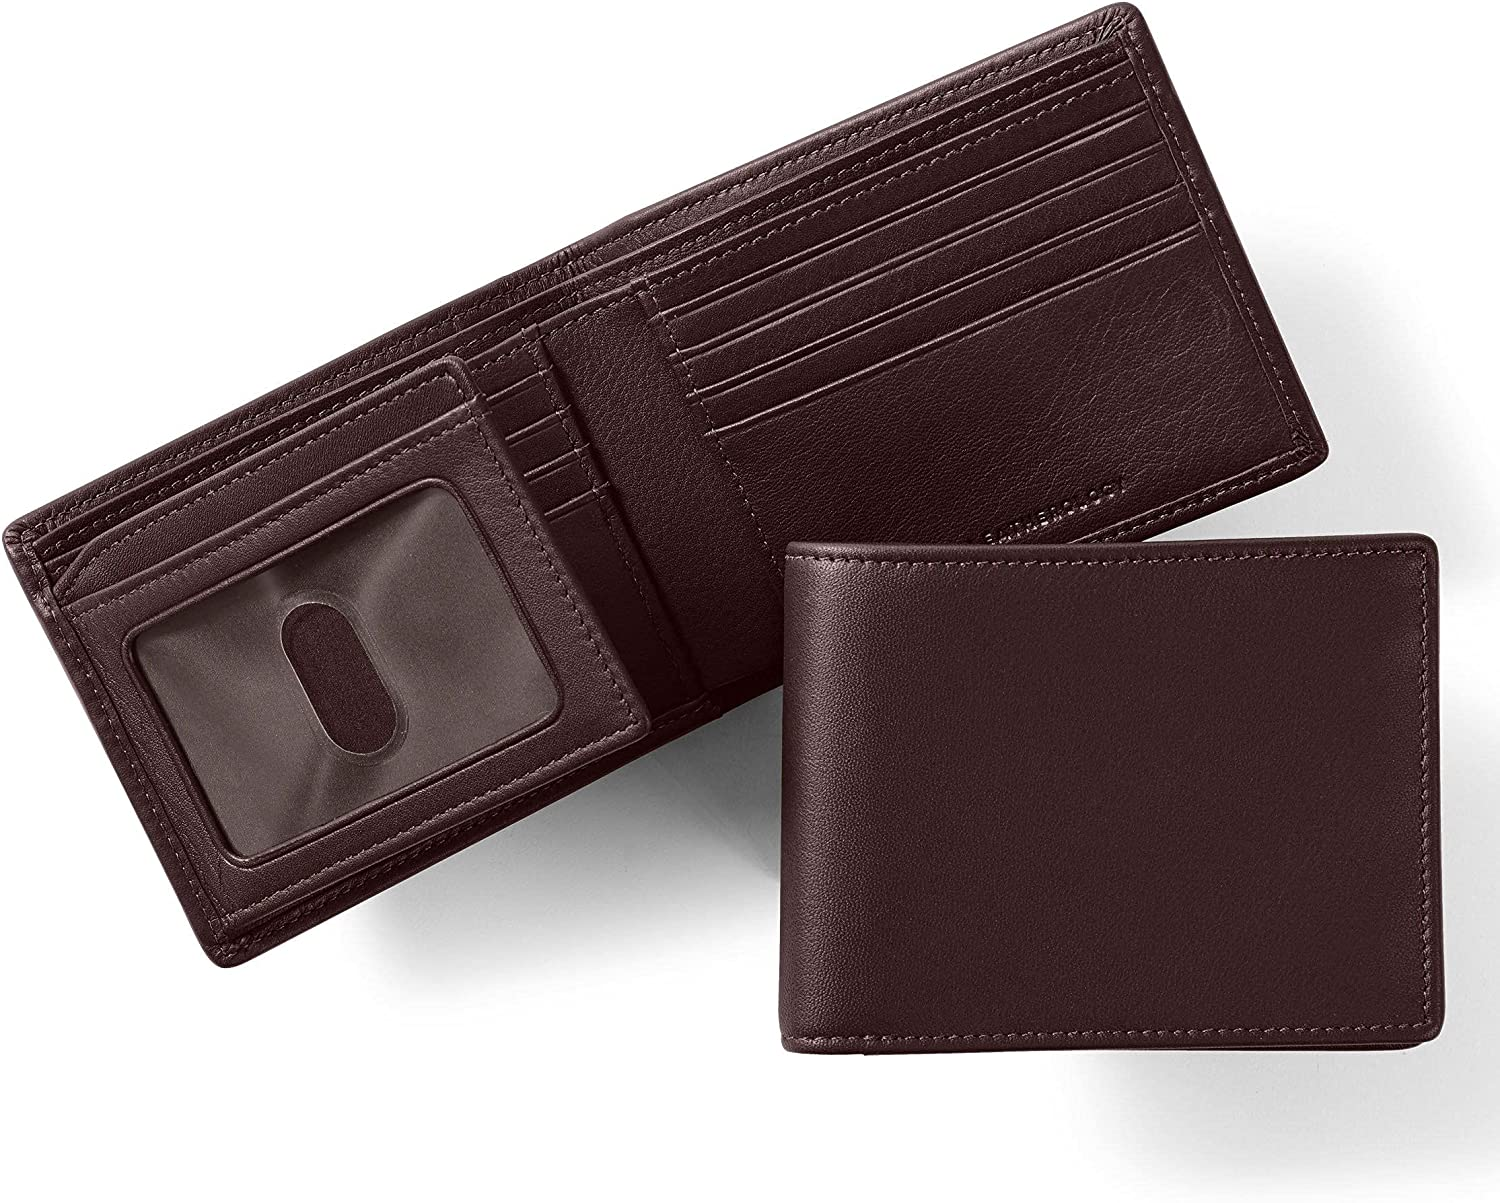 Leatherology Brown Men's Bifold Wallet with Card Flap ID Window - RFID Available